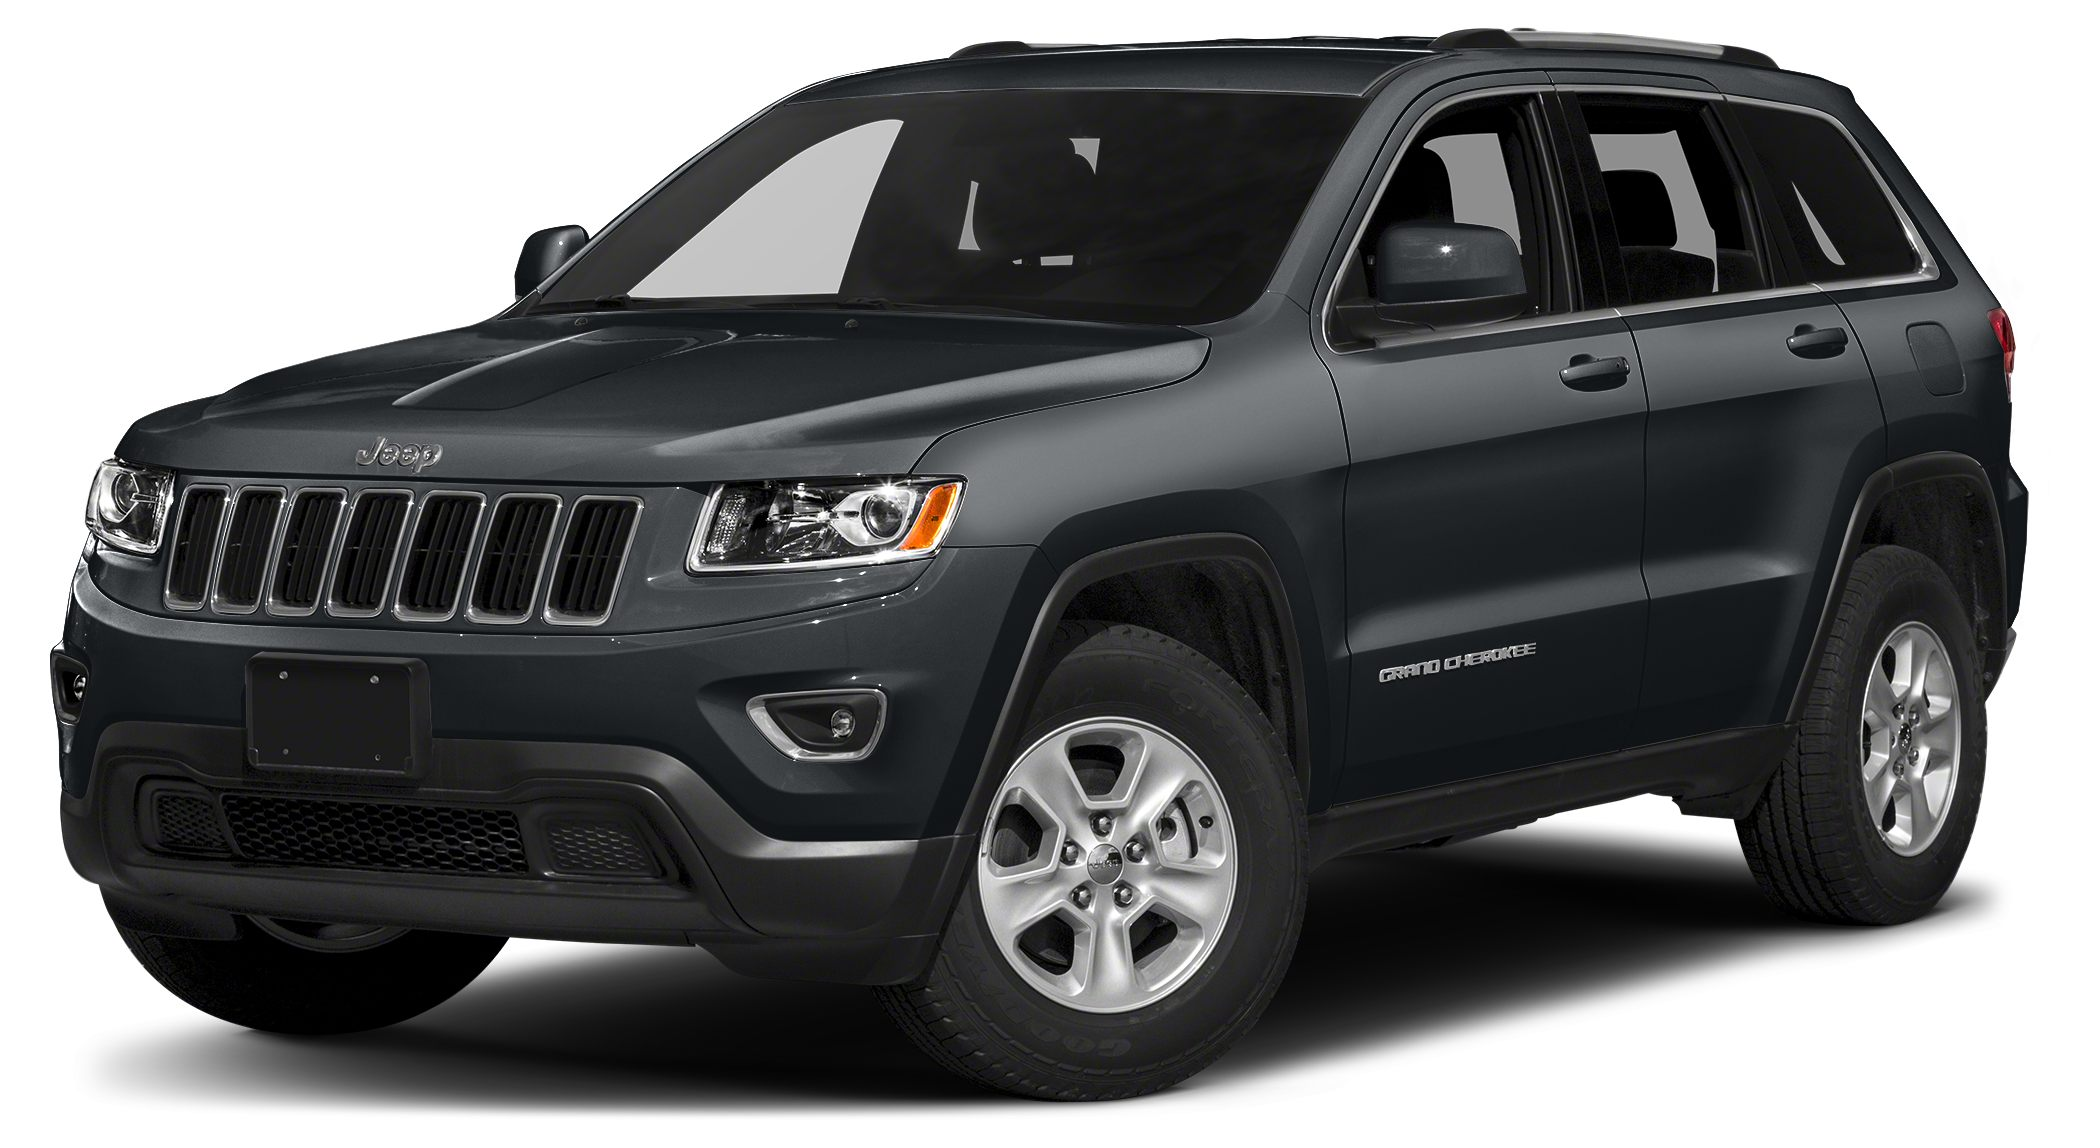 2014 Jeep Grand Cherokee Laredo Auto Check 1 Owner COMPLIMENTARY ROYAL SHIELD VEHICLE LIMITED